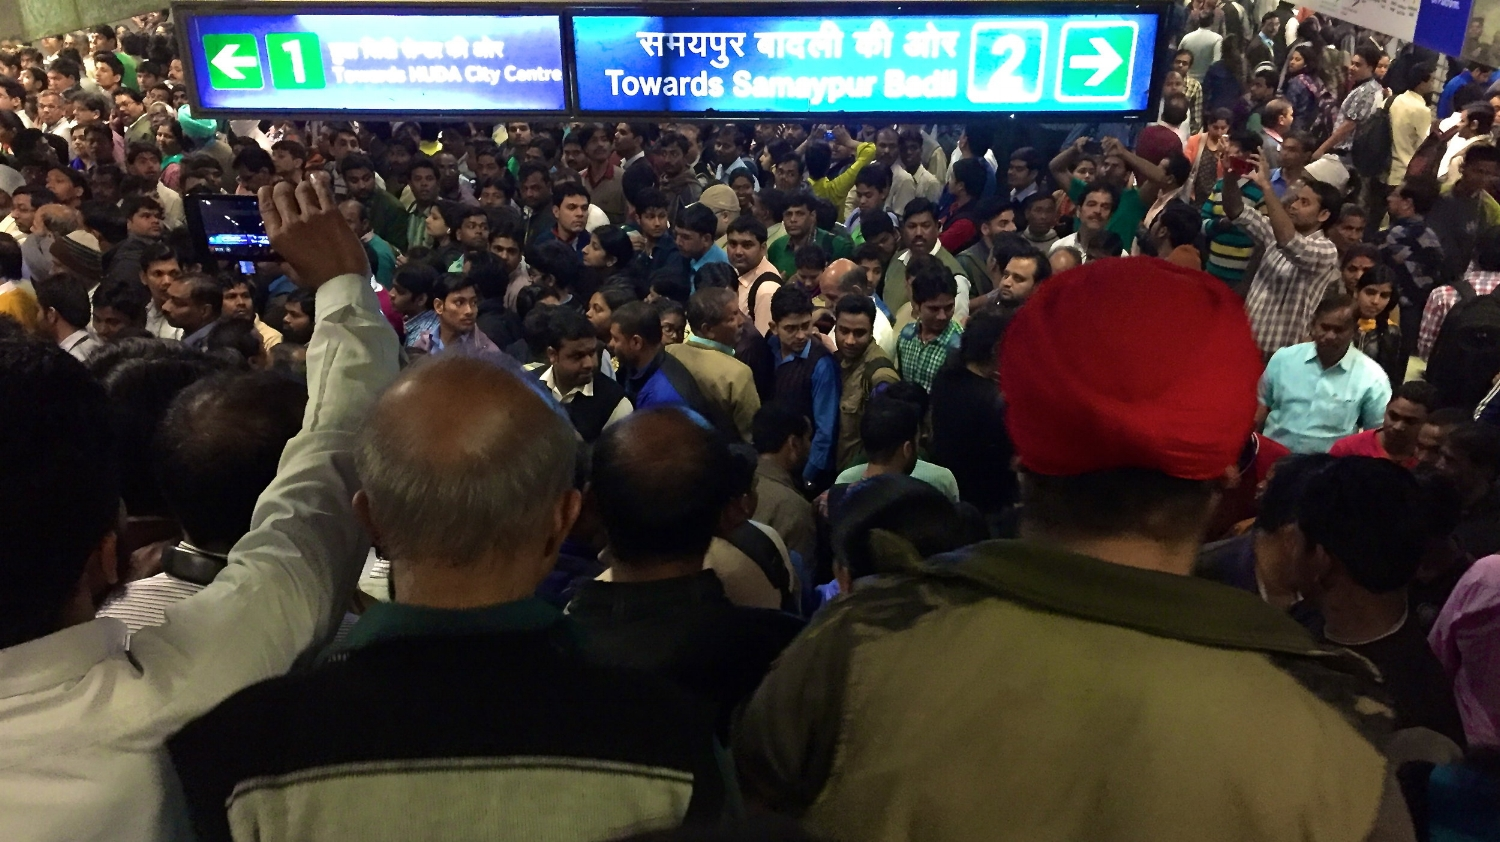 Mister Tikku's signature red turban is a beacon in the Connaught Place metro station